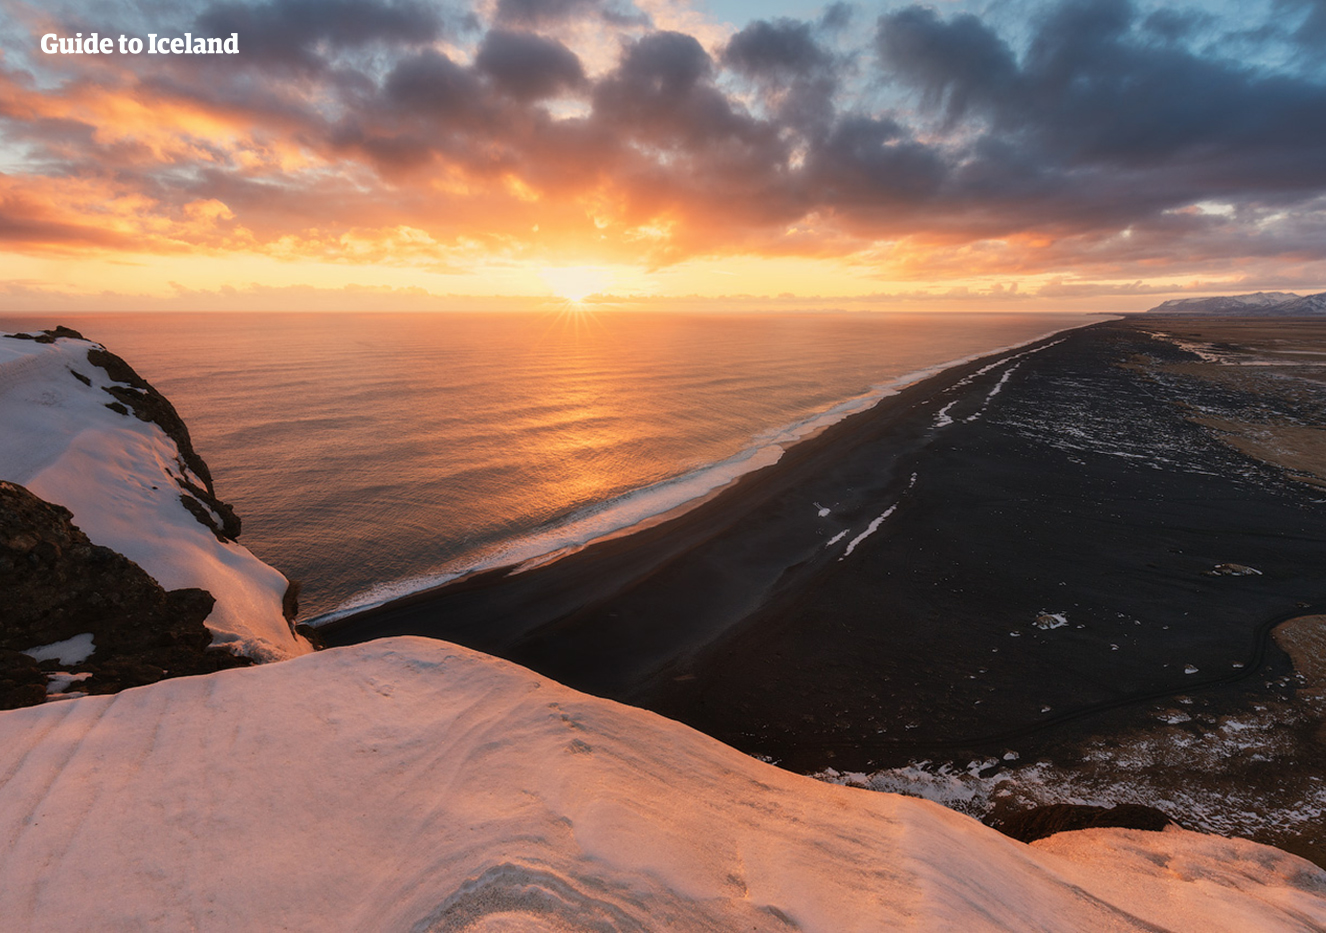 11-Day Winter Self-Drive | South Coast Elements and West Iceland - day 9